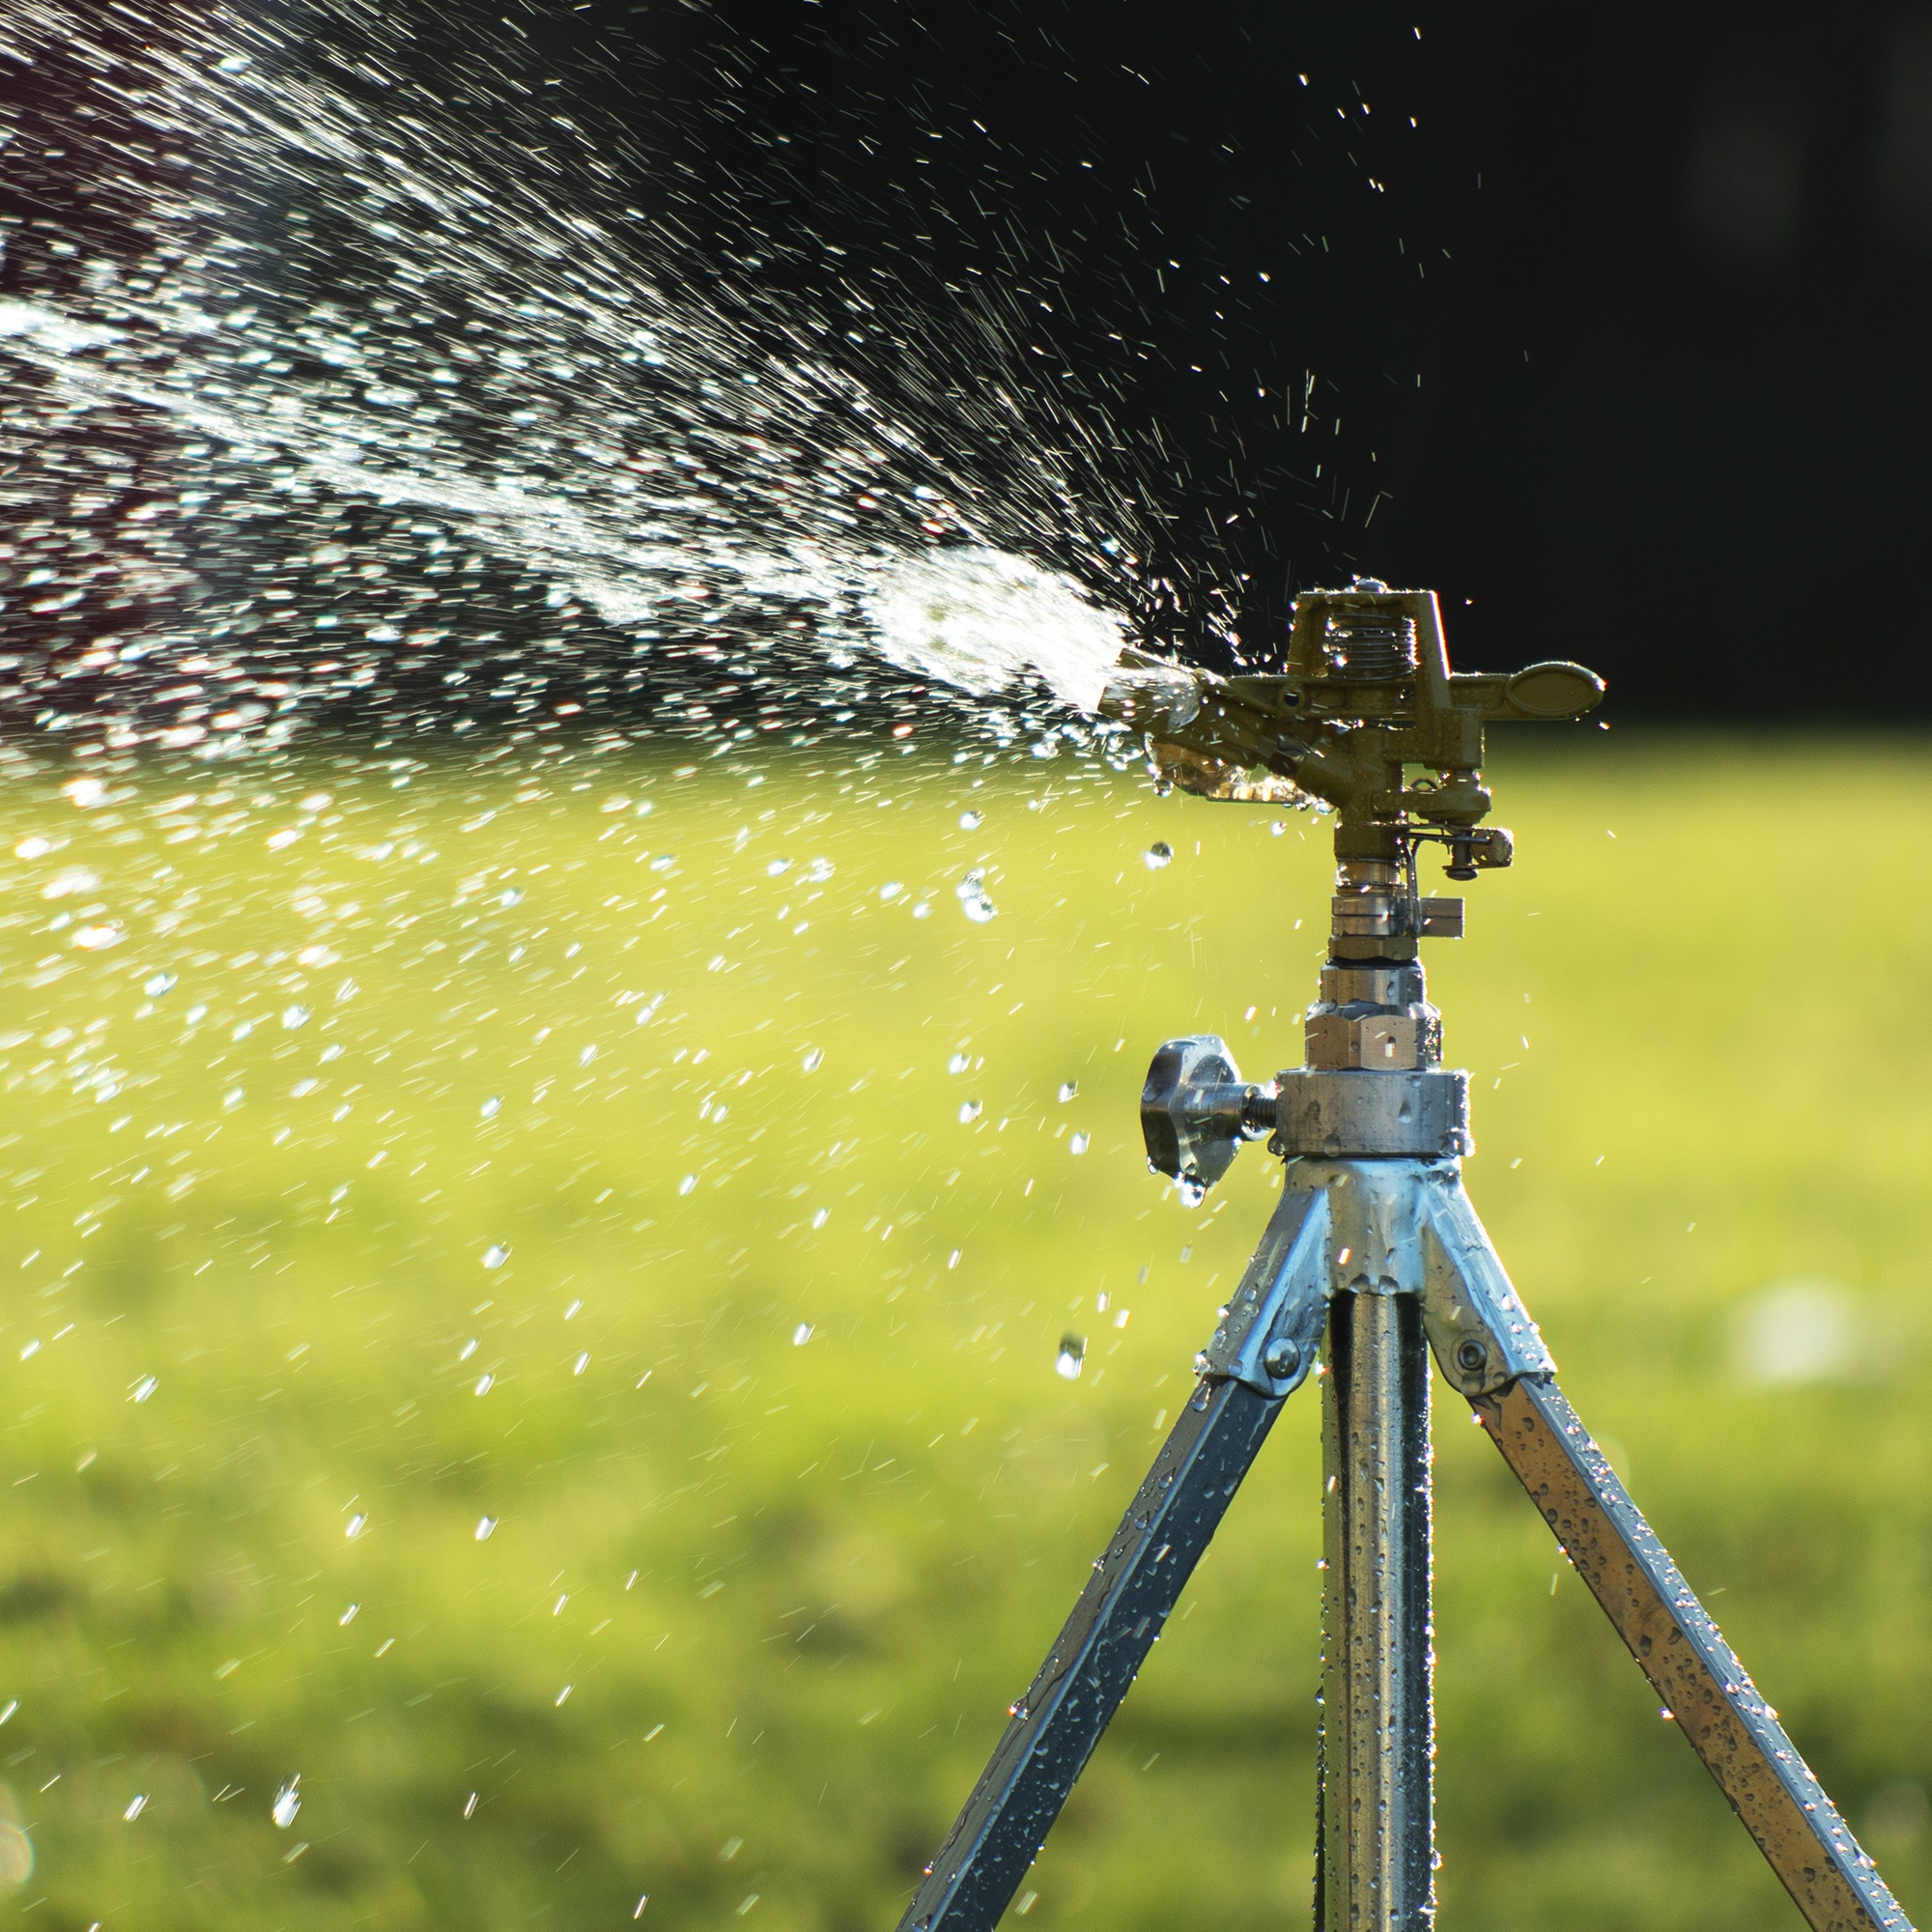 Spike Mounted Sprinklers